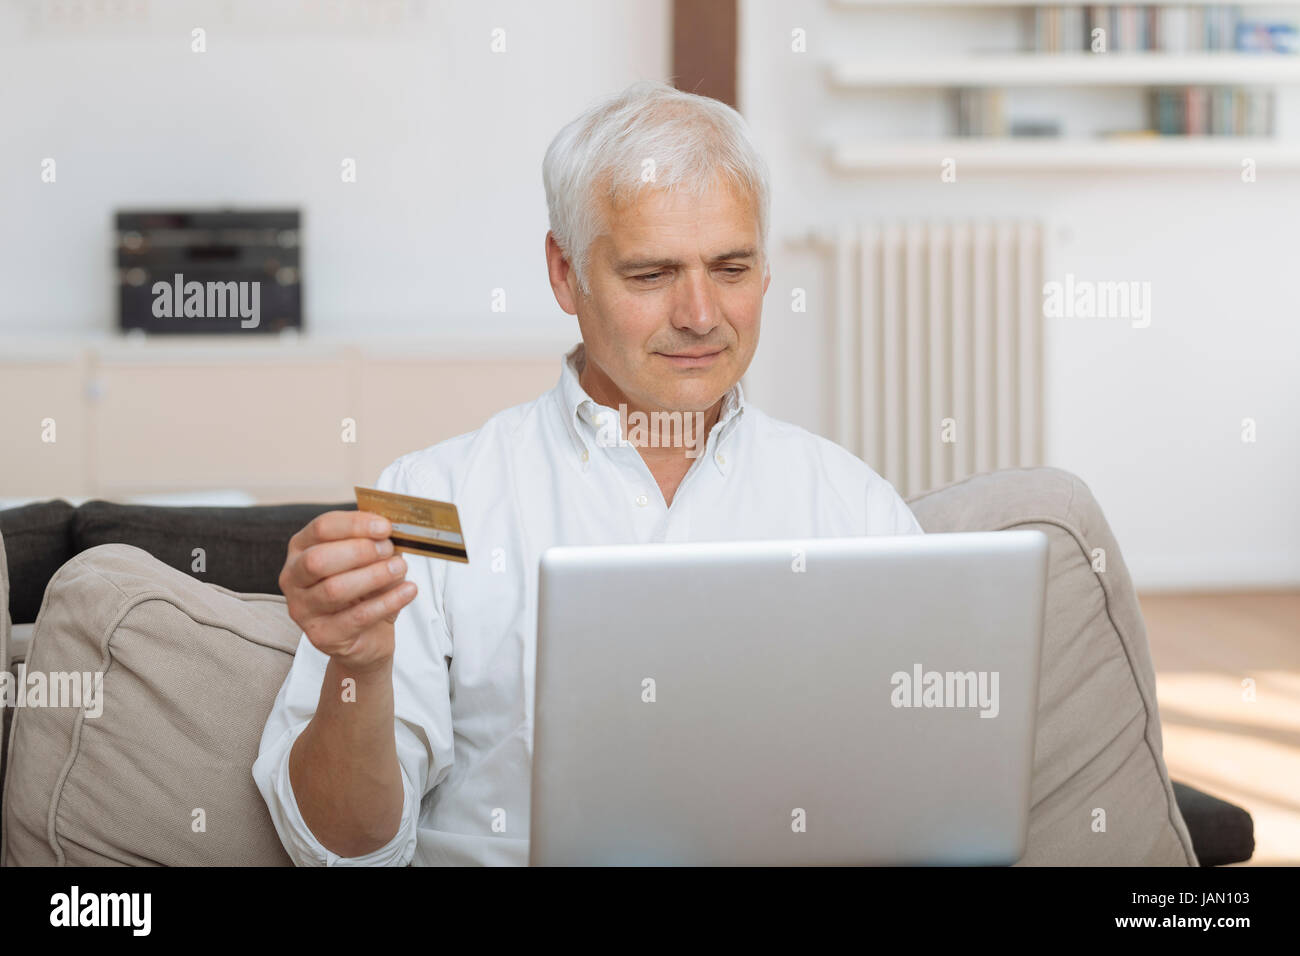 mature man using his laptop and holding his credit card - Stock Image